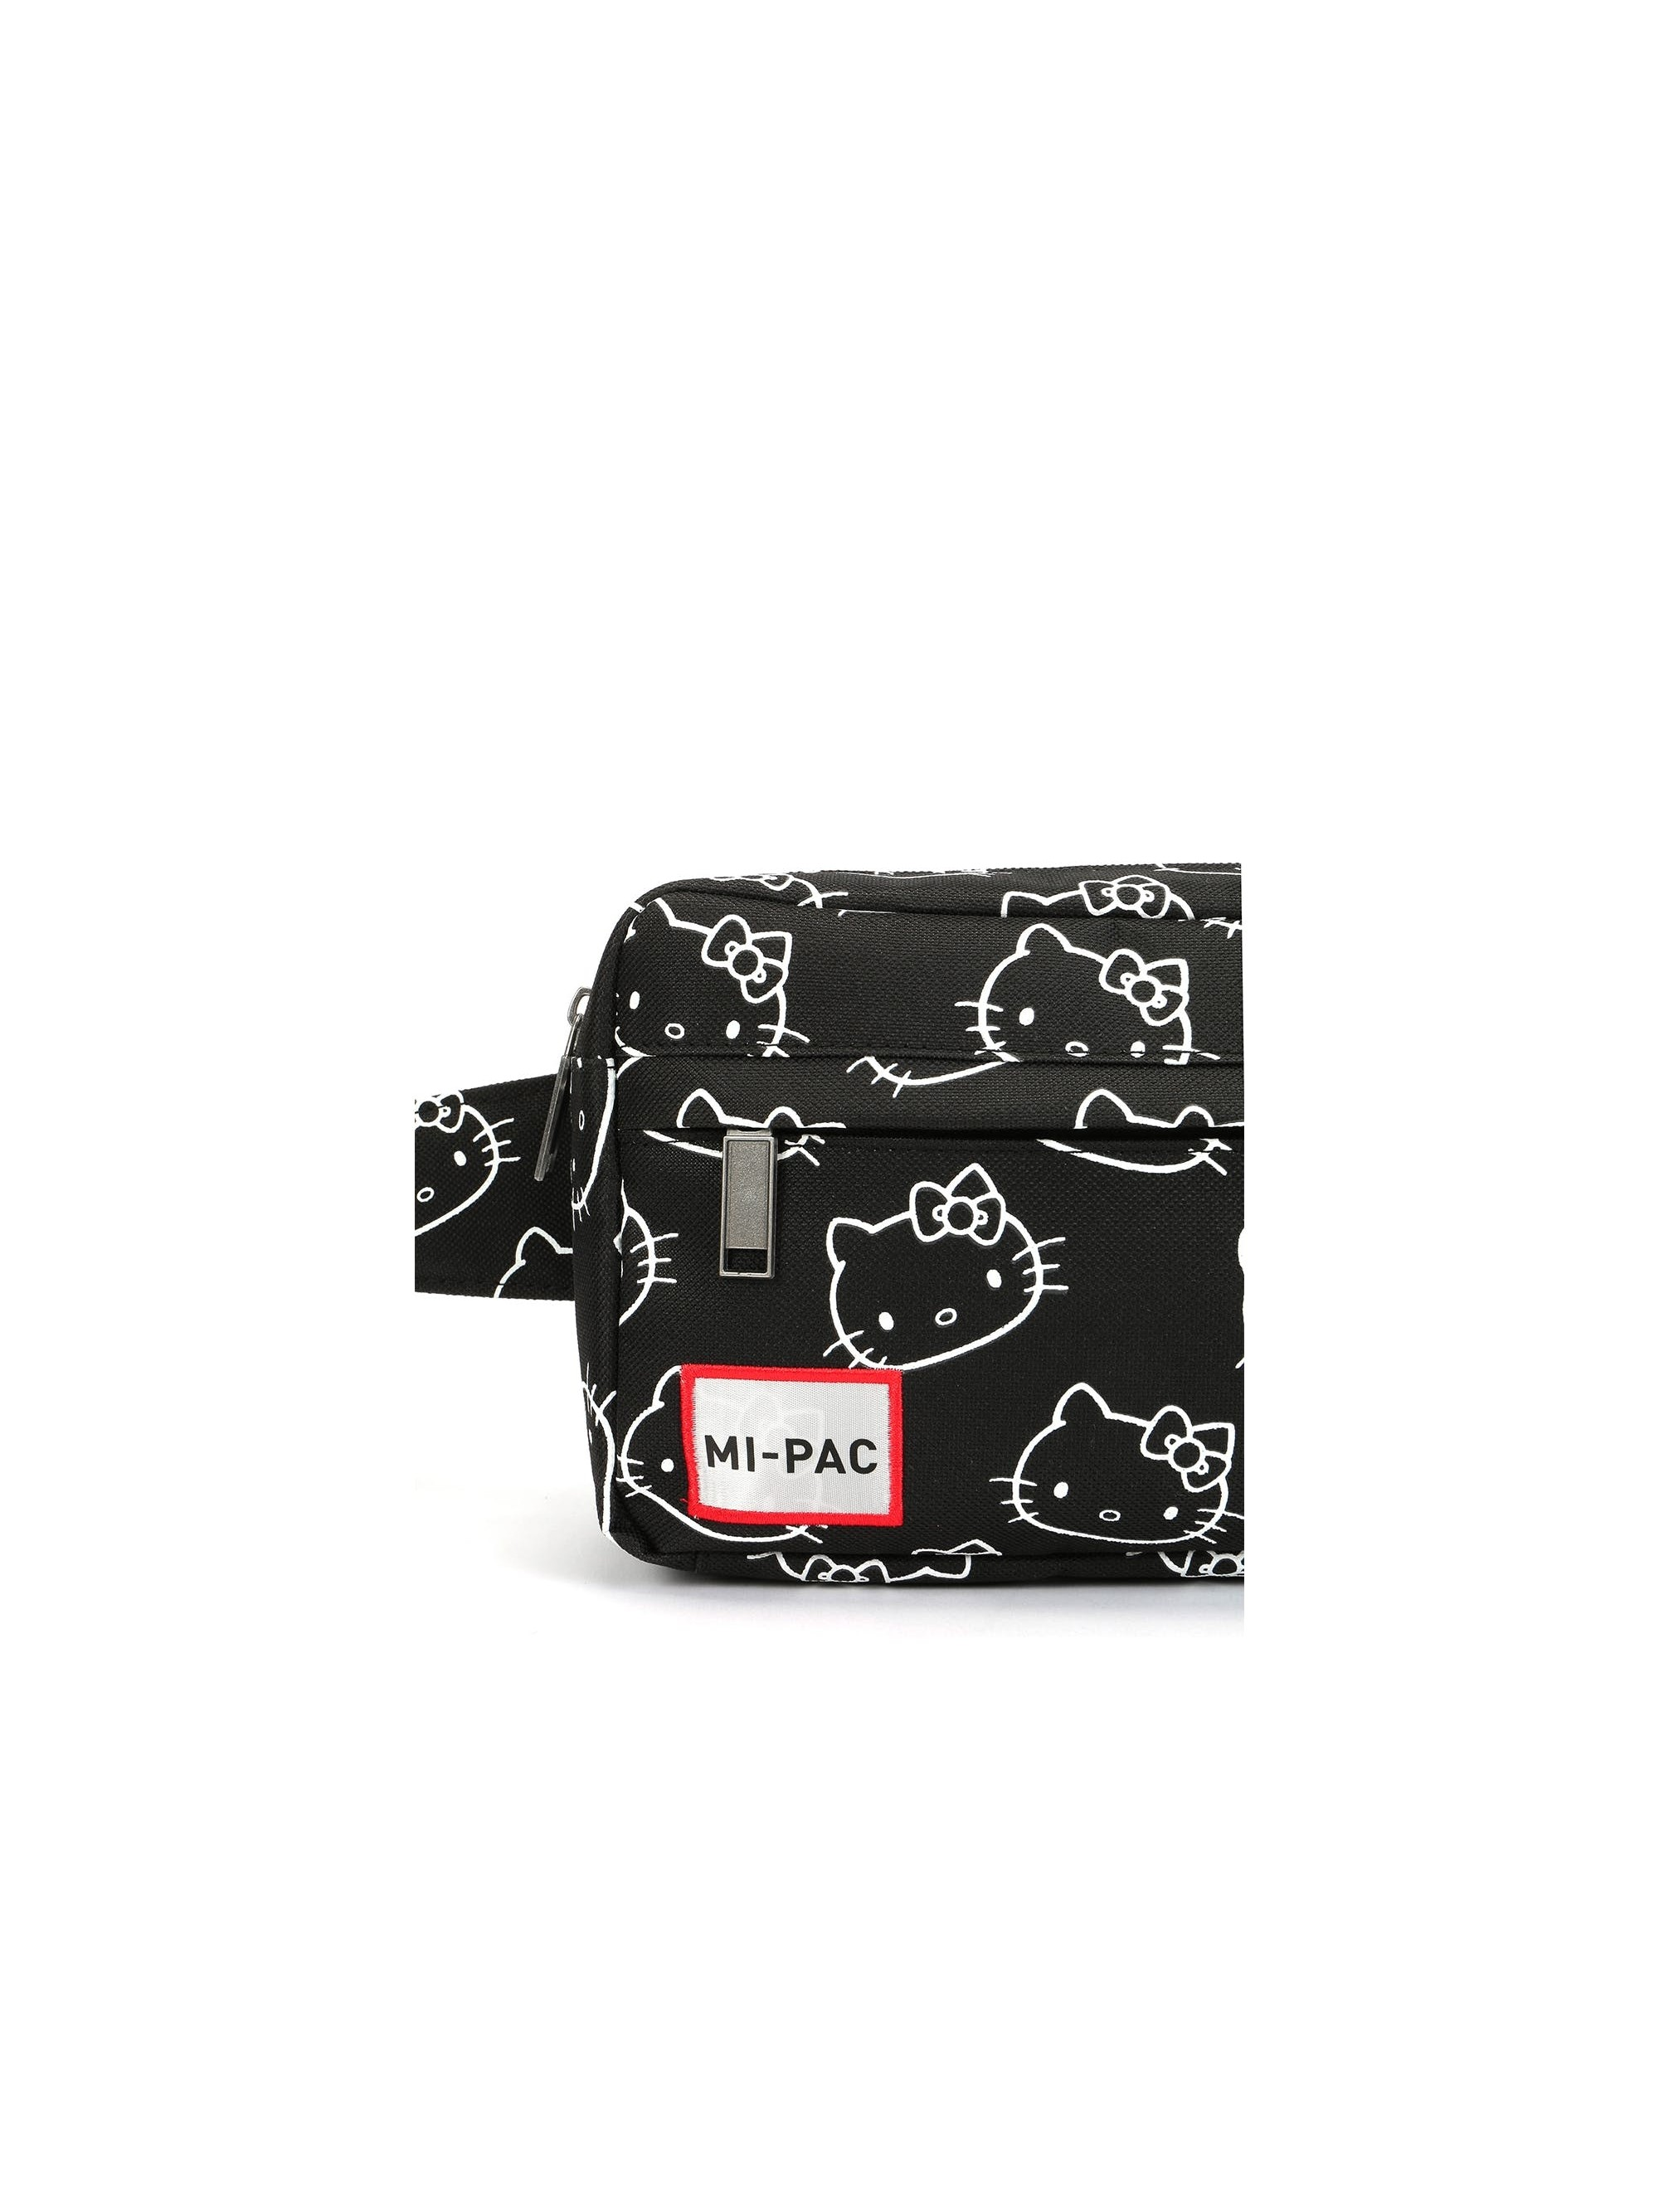 68a4383235e6 ... Mi-Pac Street Pack Hello Kitty-Black. Tap to expand · Tap to expand